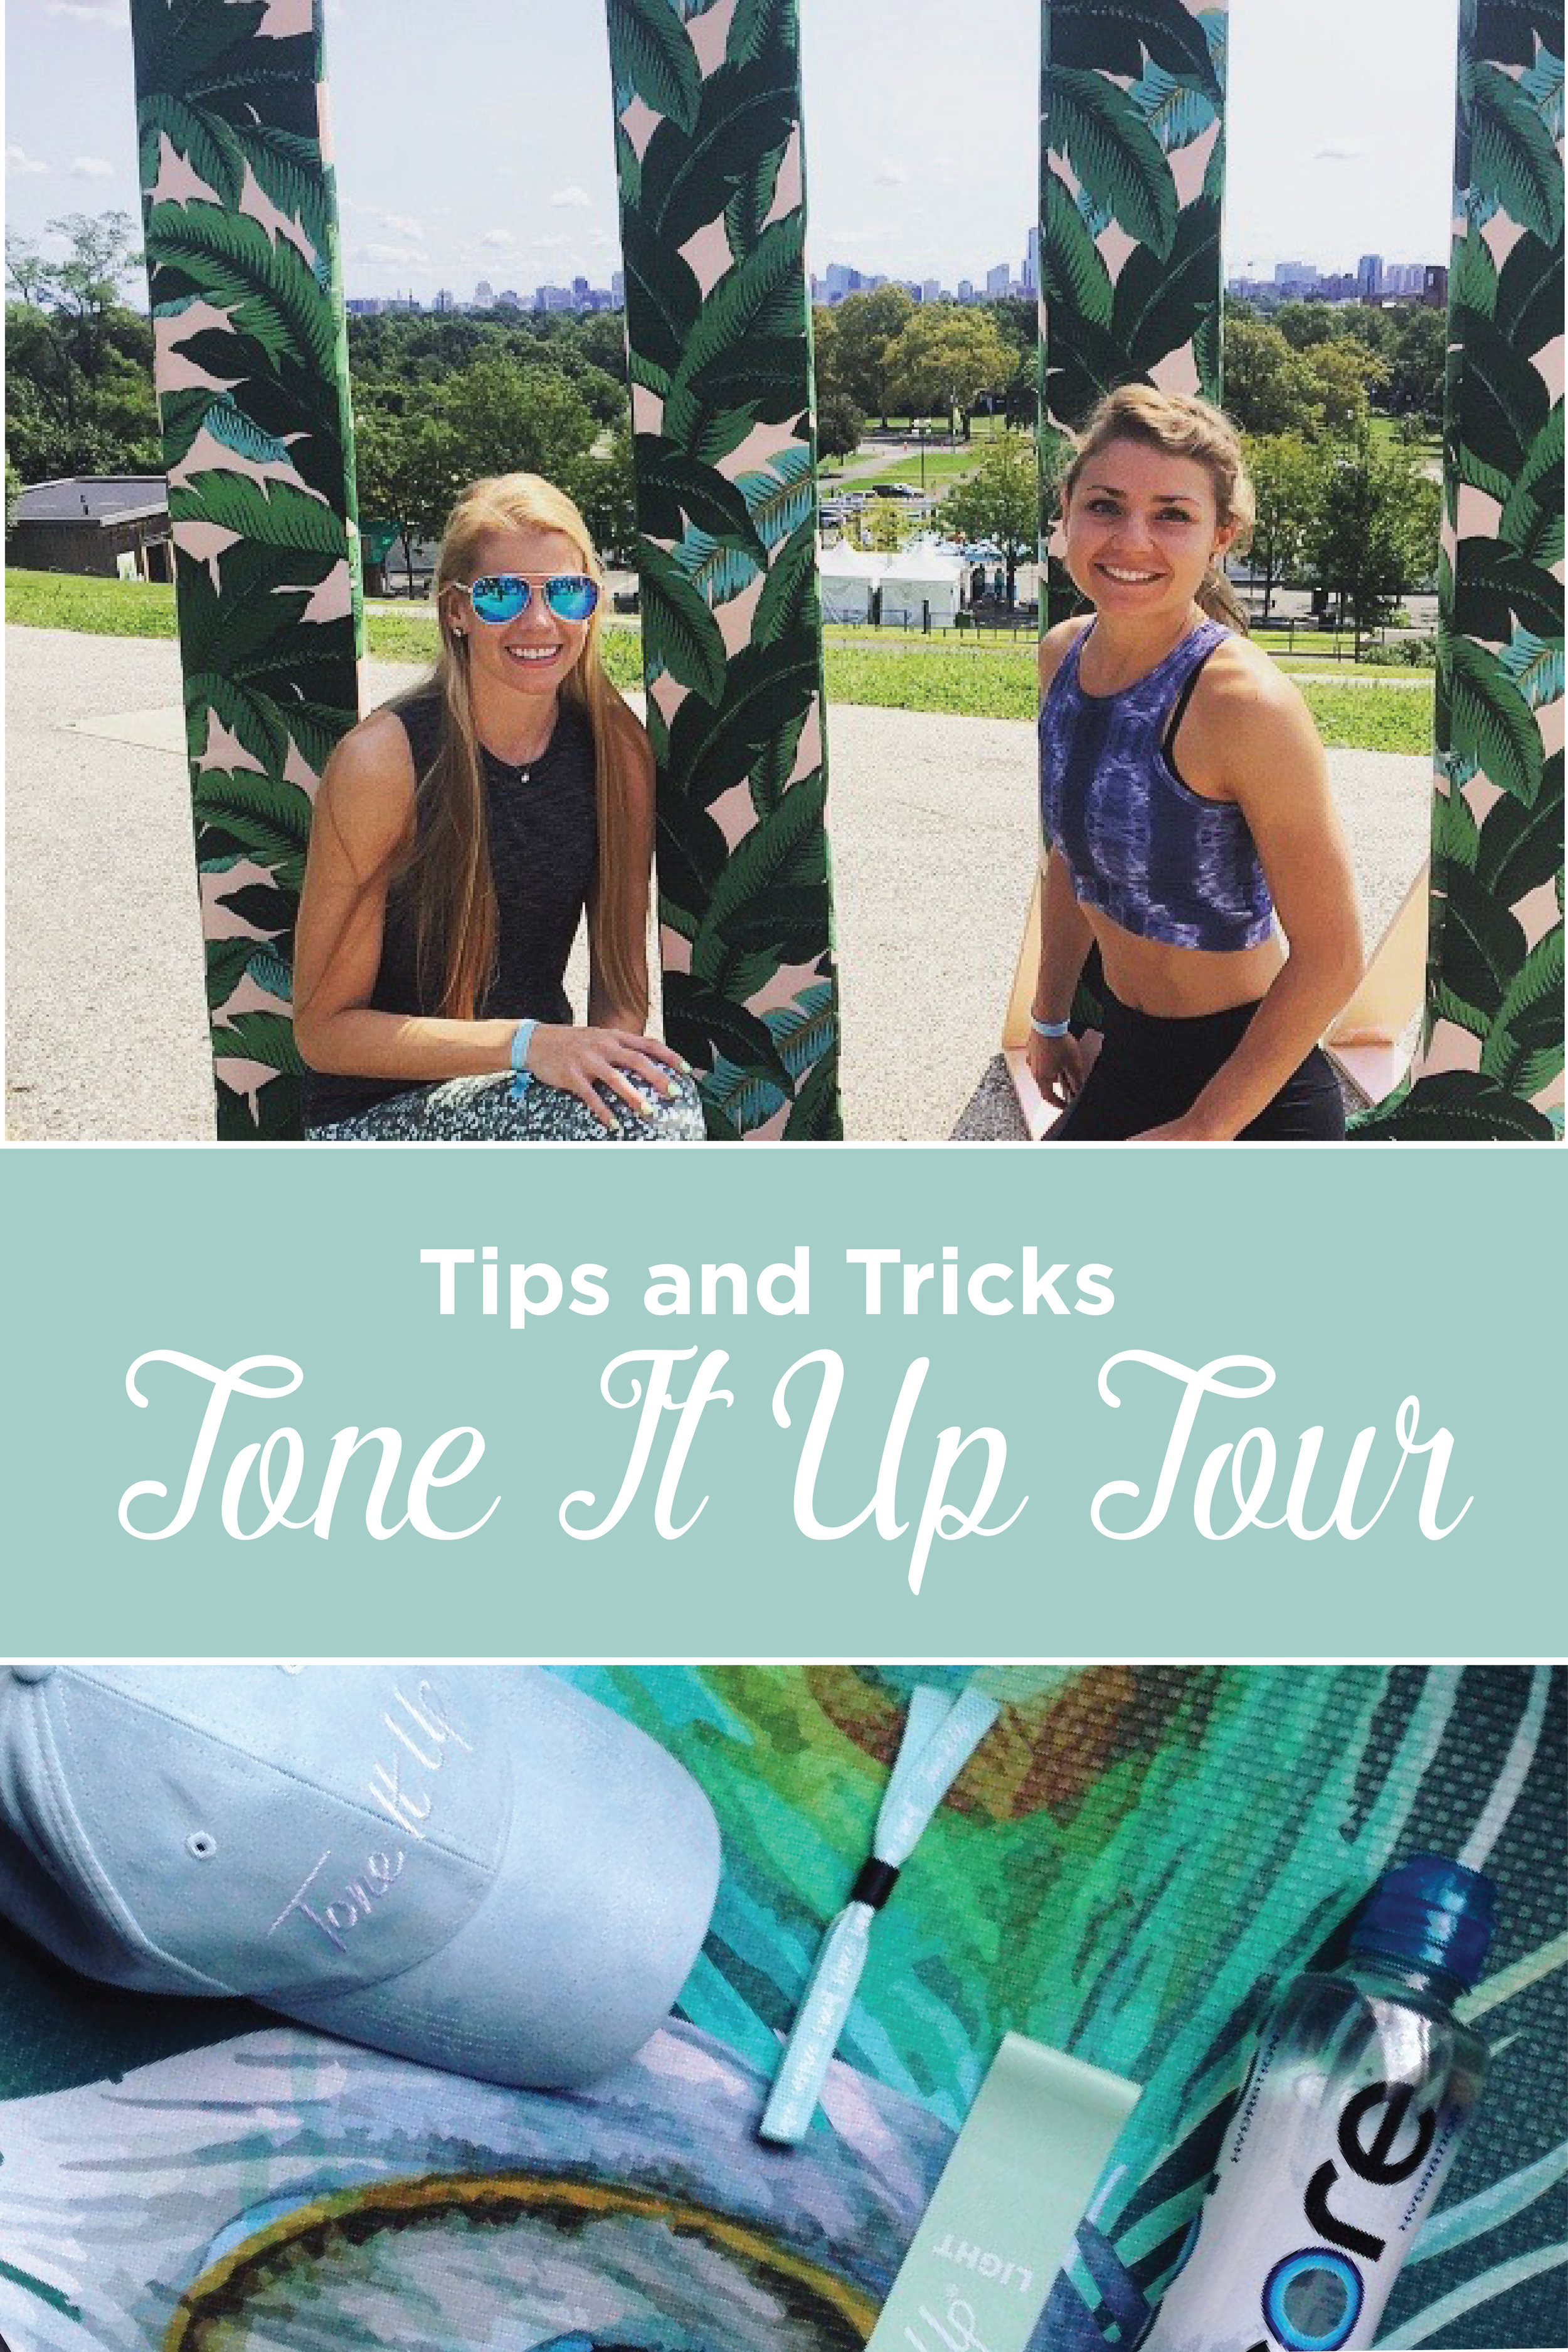 Tone It Up (TIU) Tour Tips and Tricks. Everything you need to know.